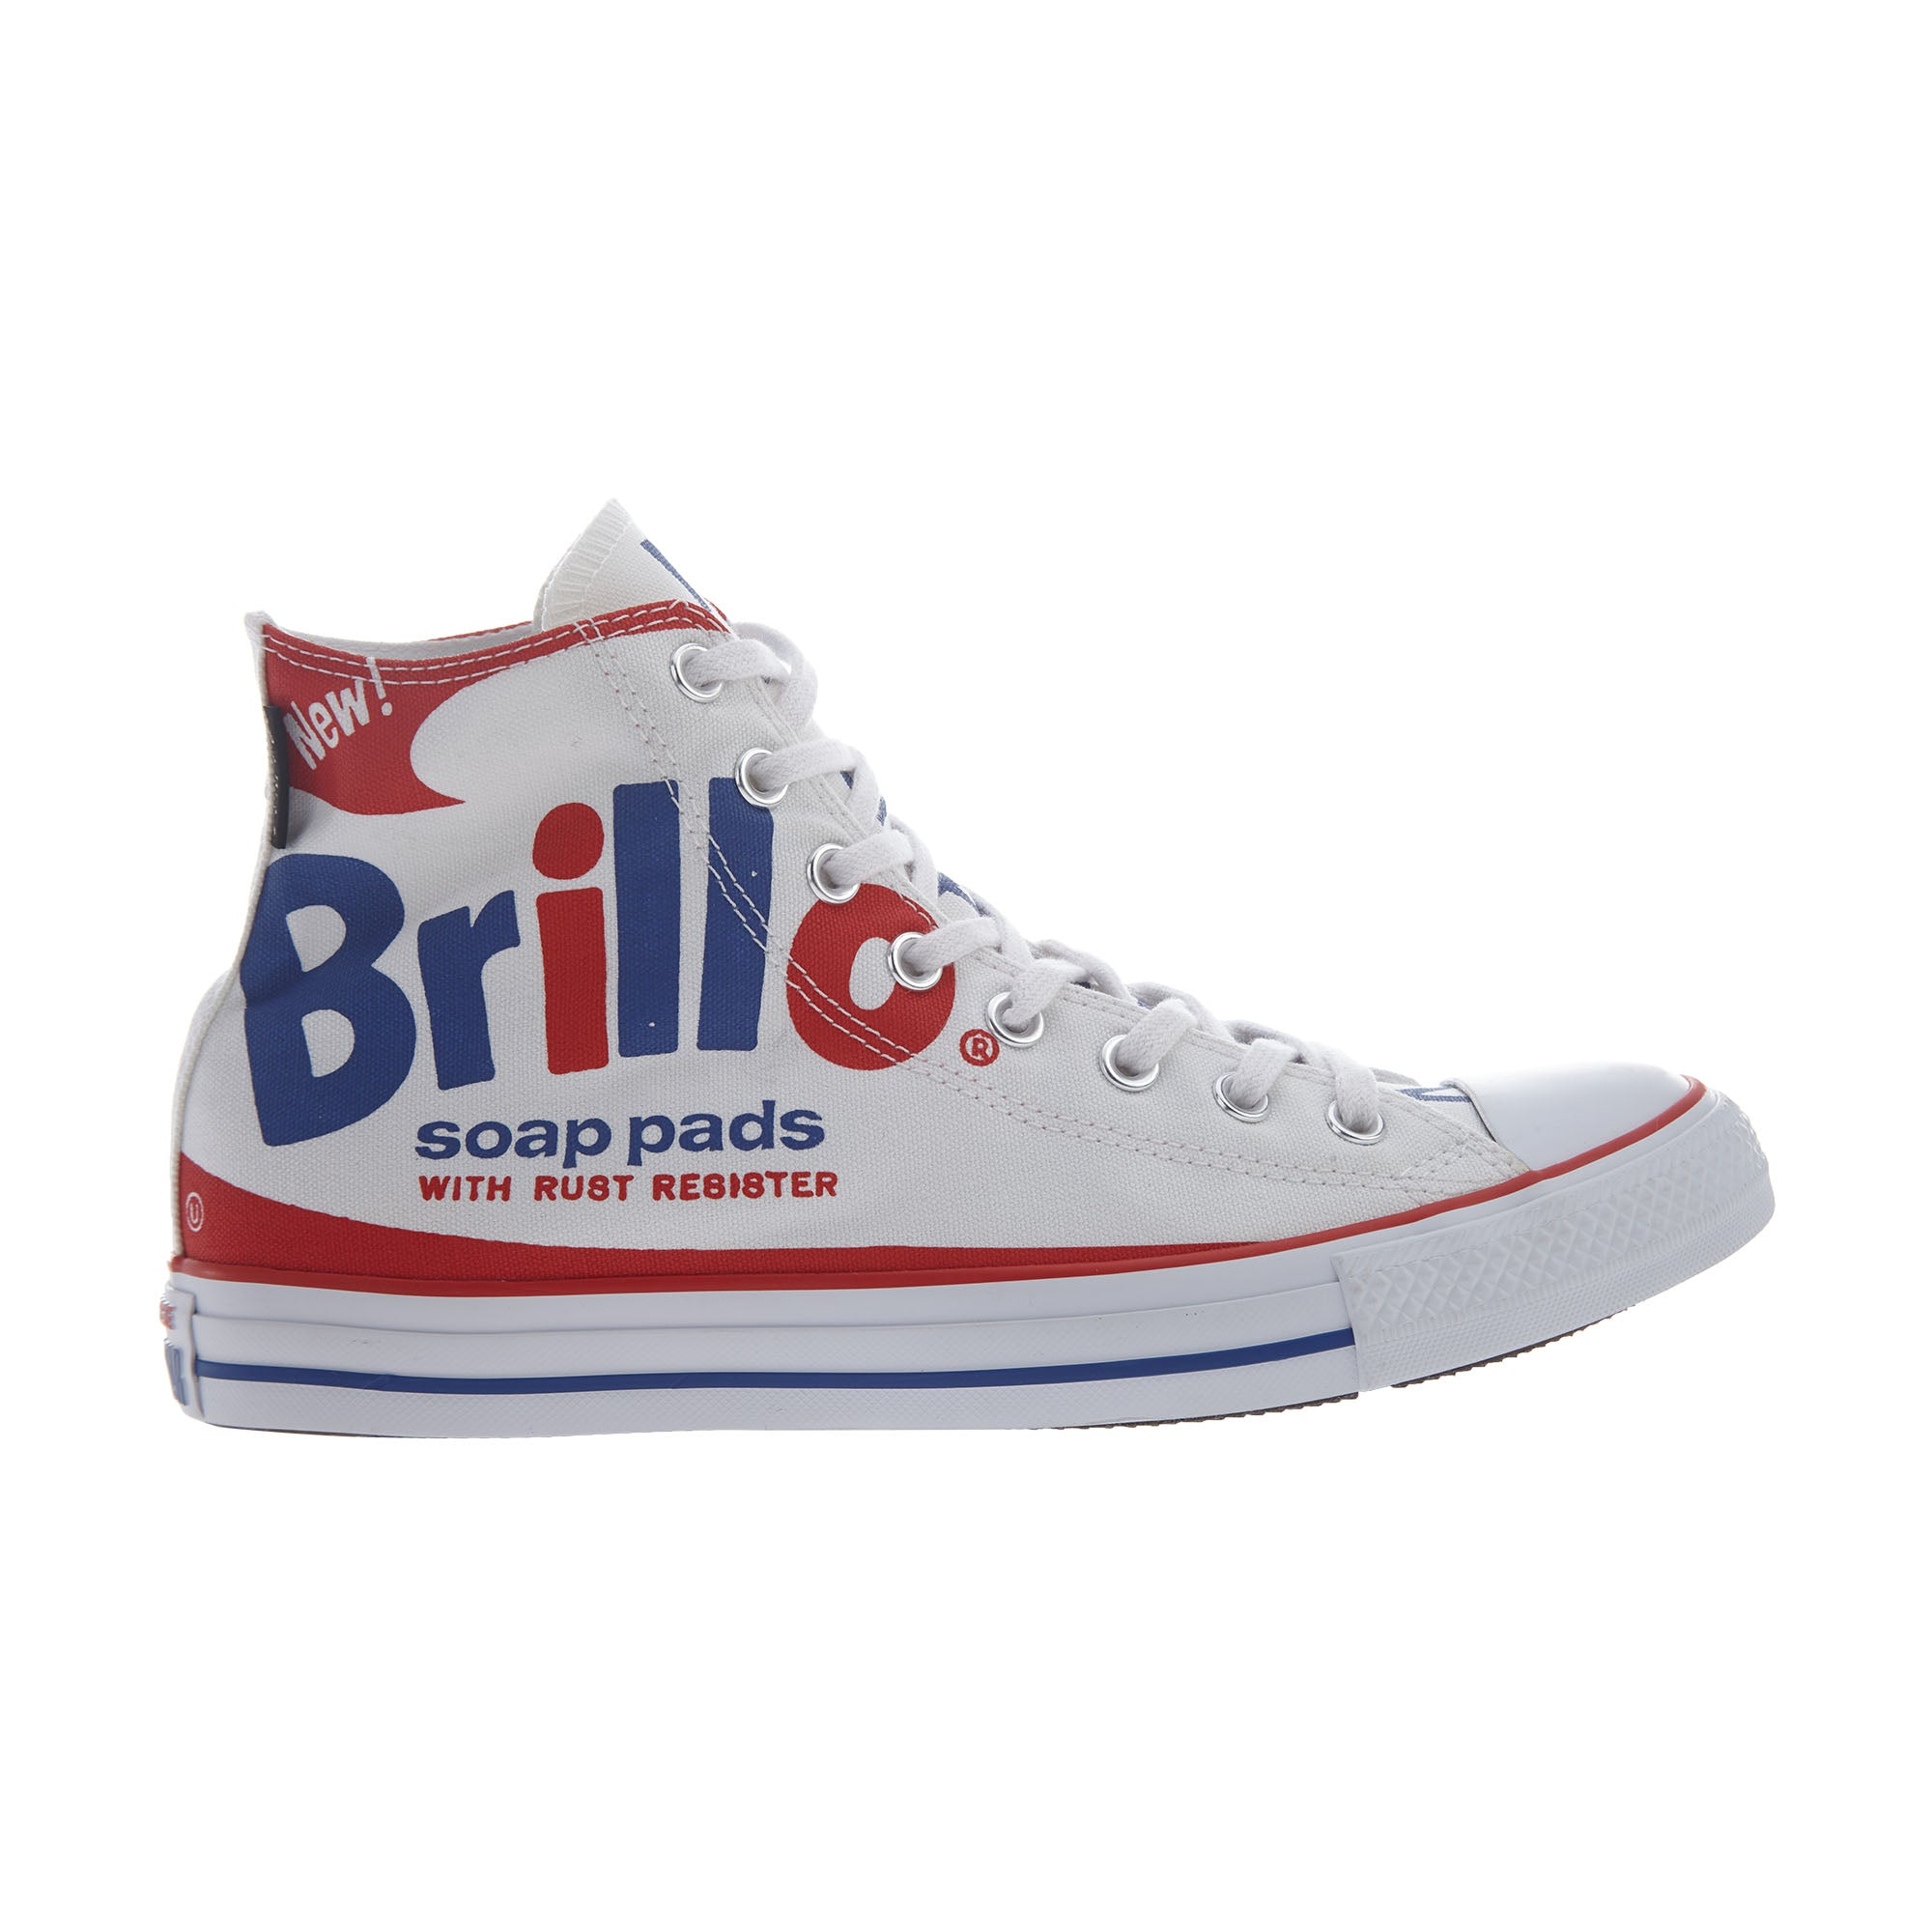 4b42aef9bb27 Converse Chuck Tailor All Star Hi Unisex Style   153838f-WHITE RED BLU